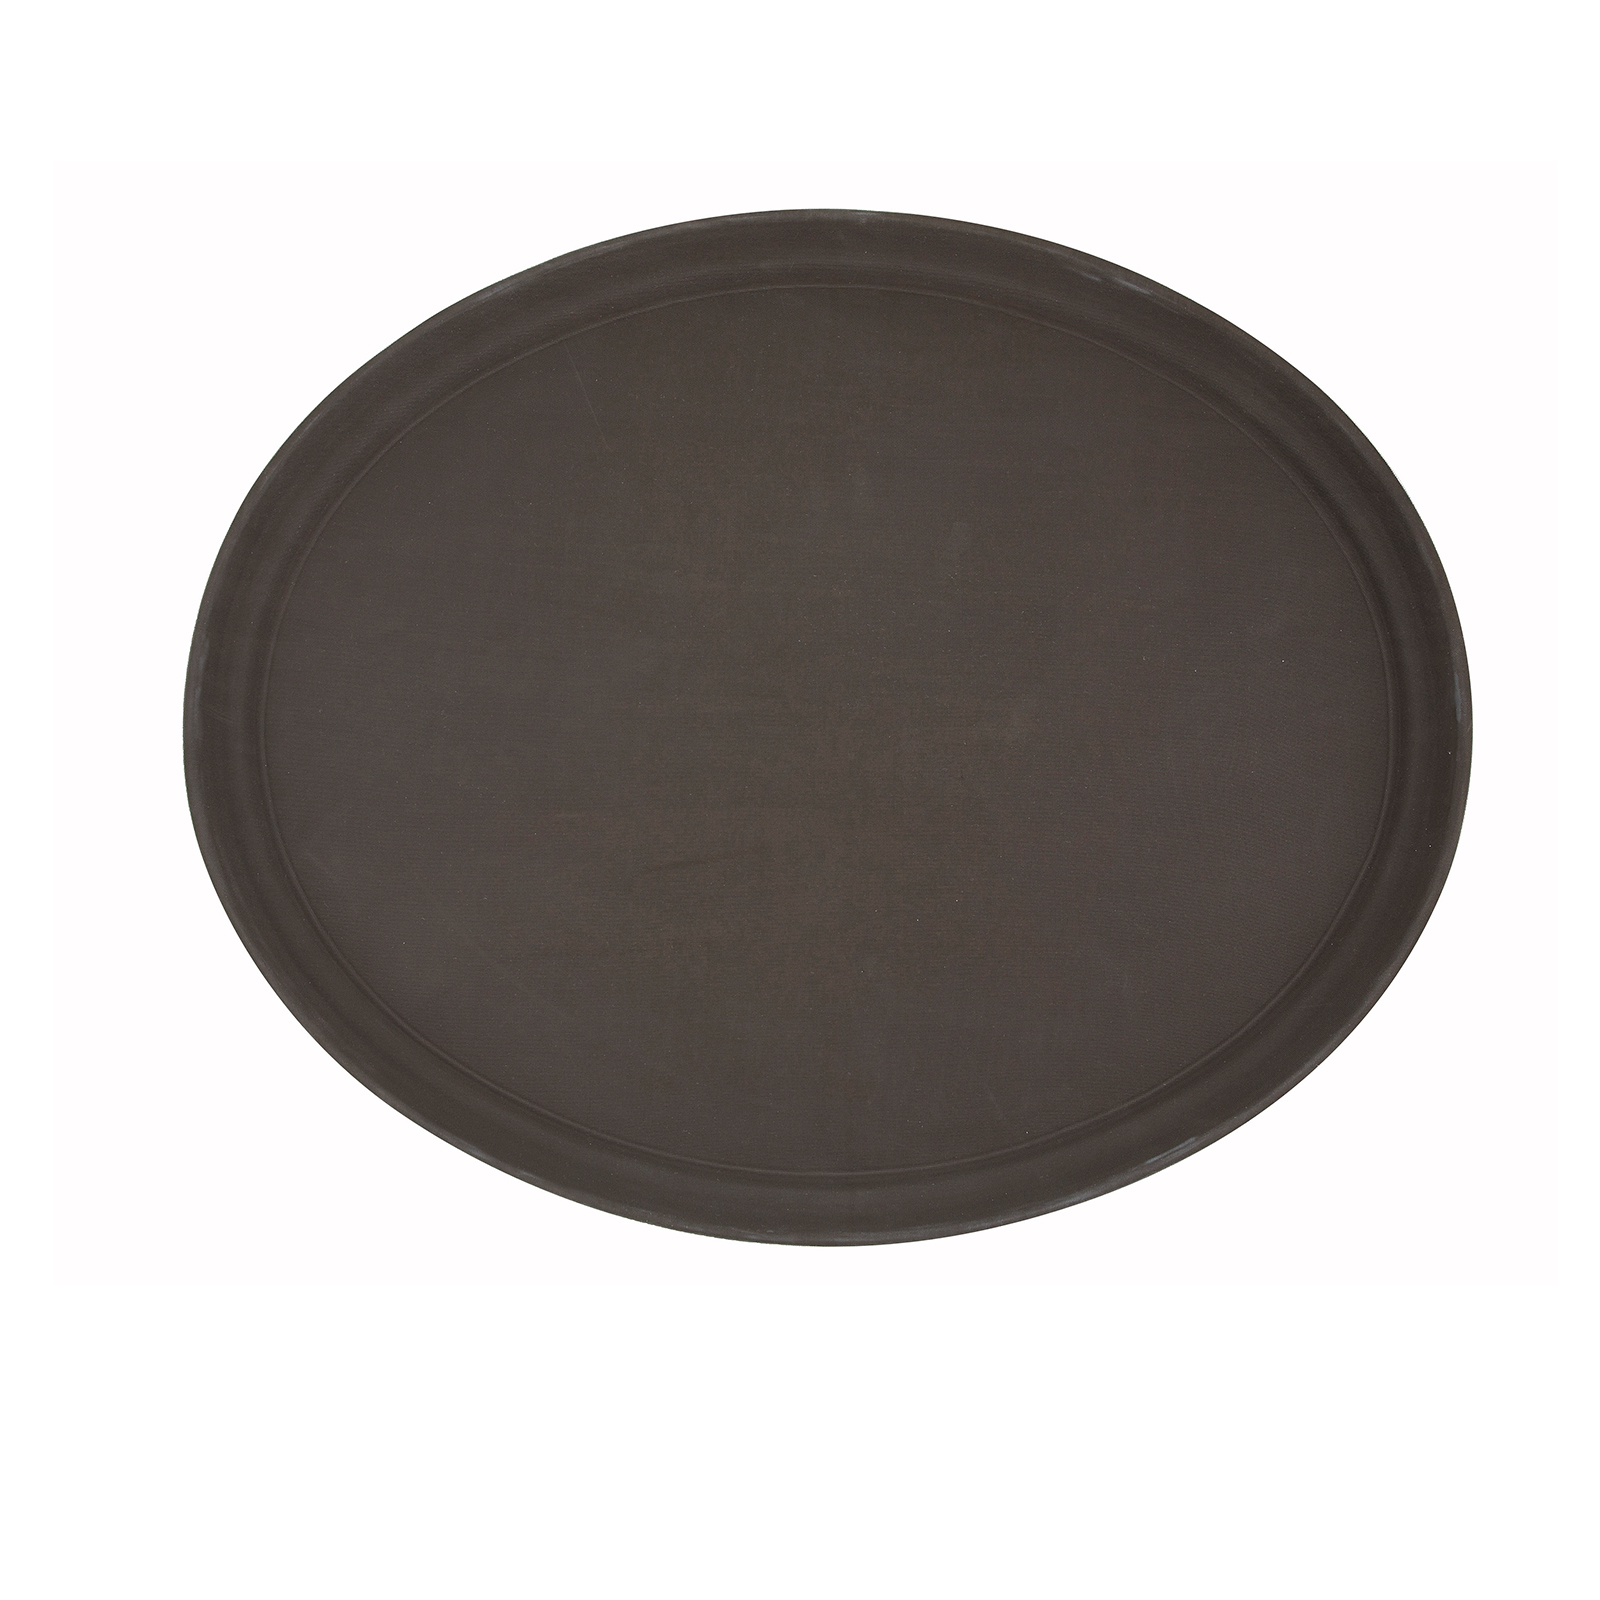 Winco TFG-2622N serving tray, non-skid